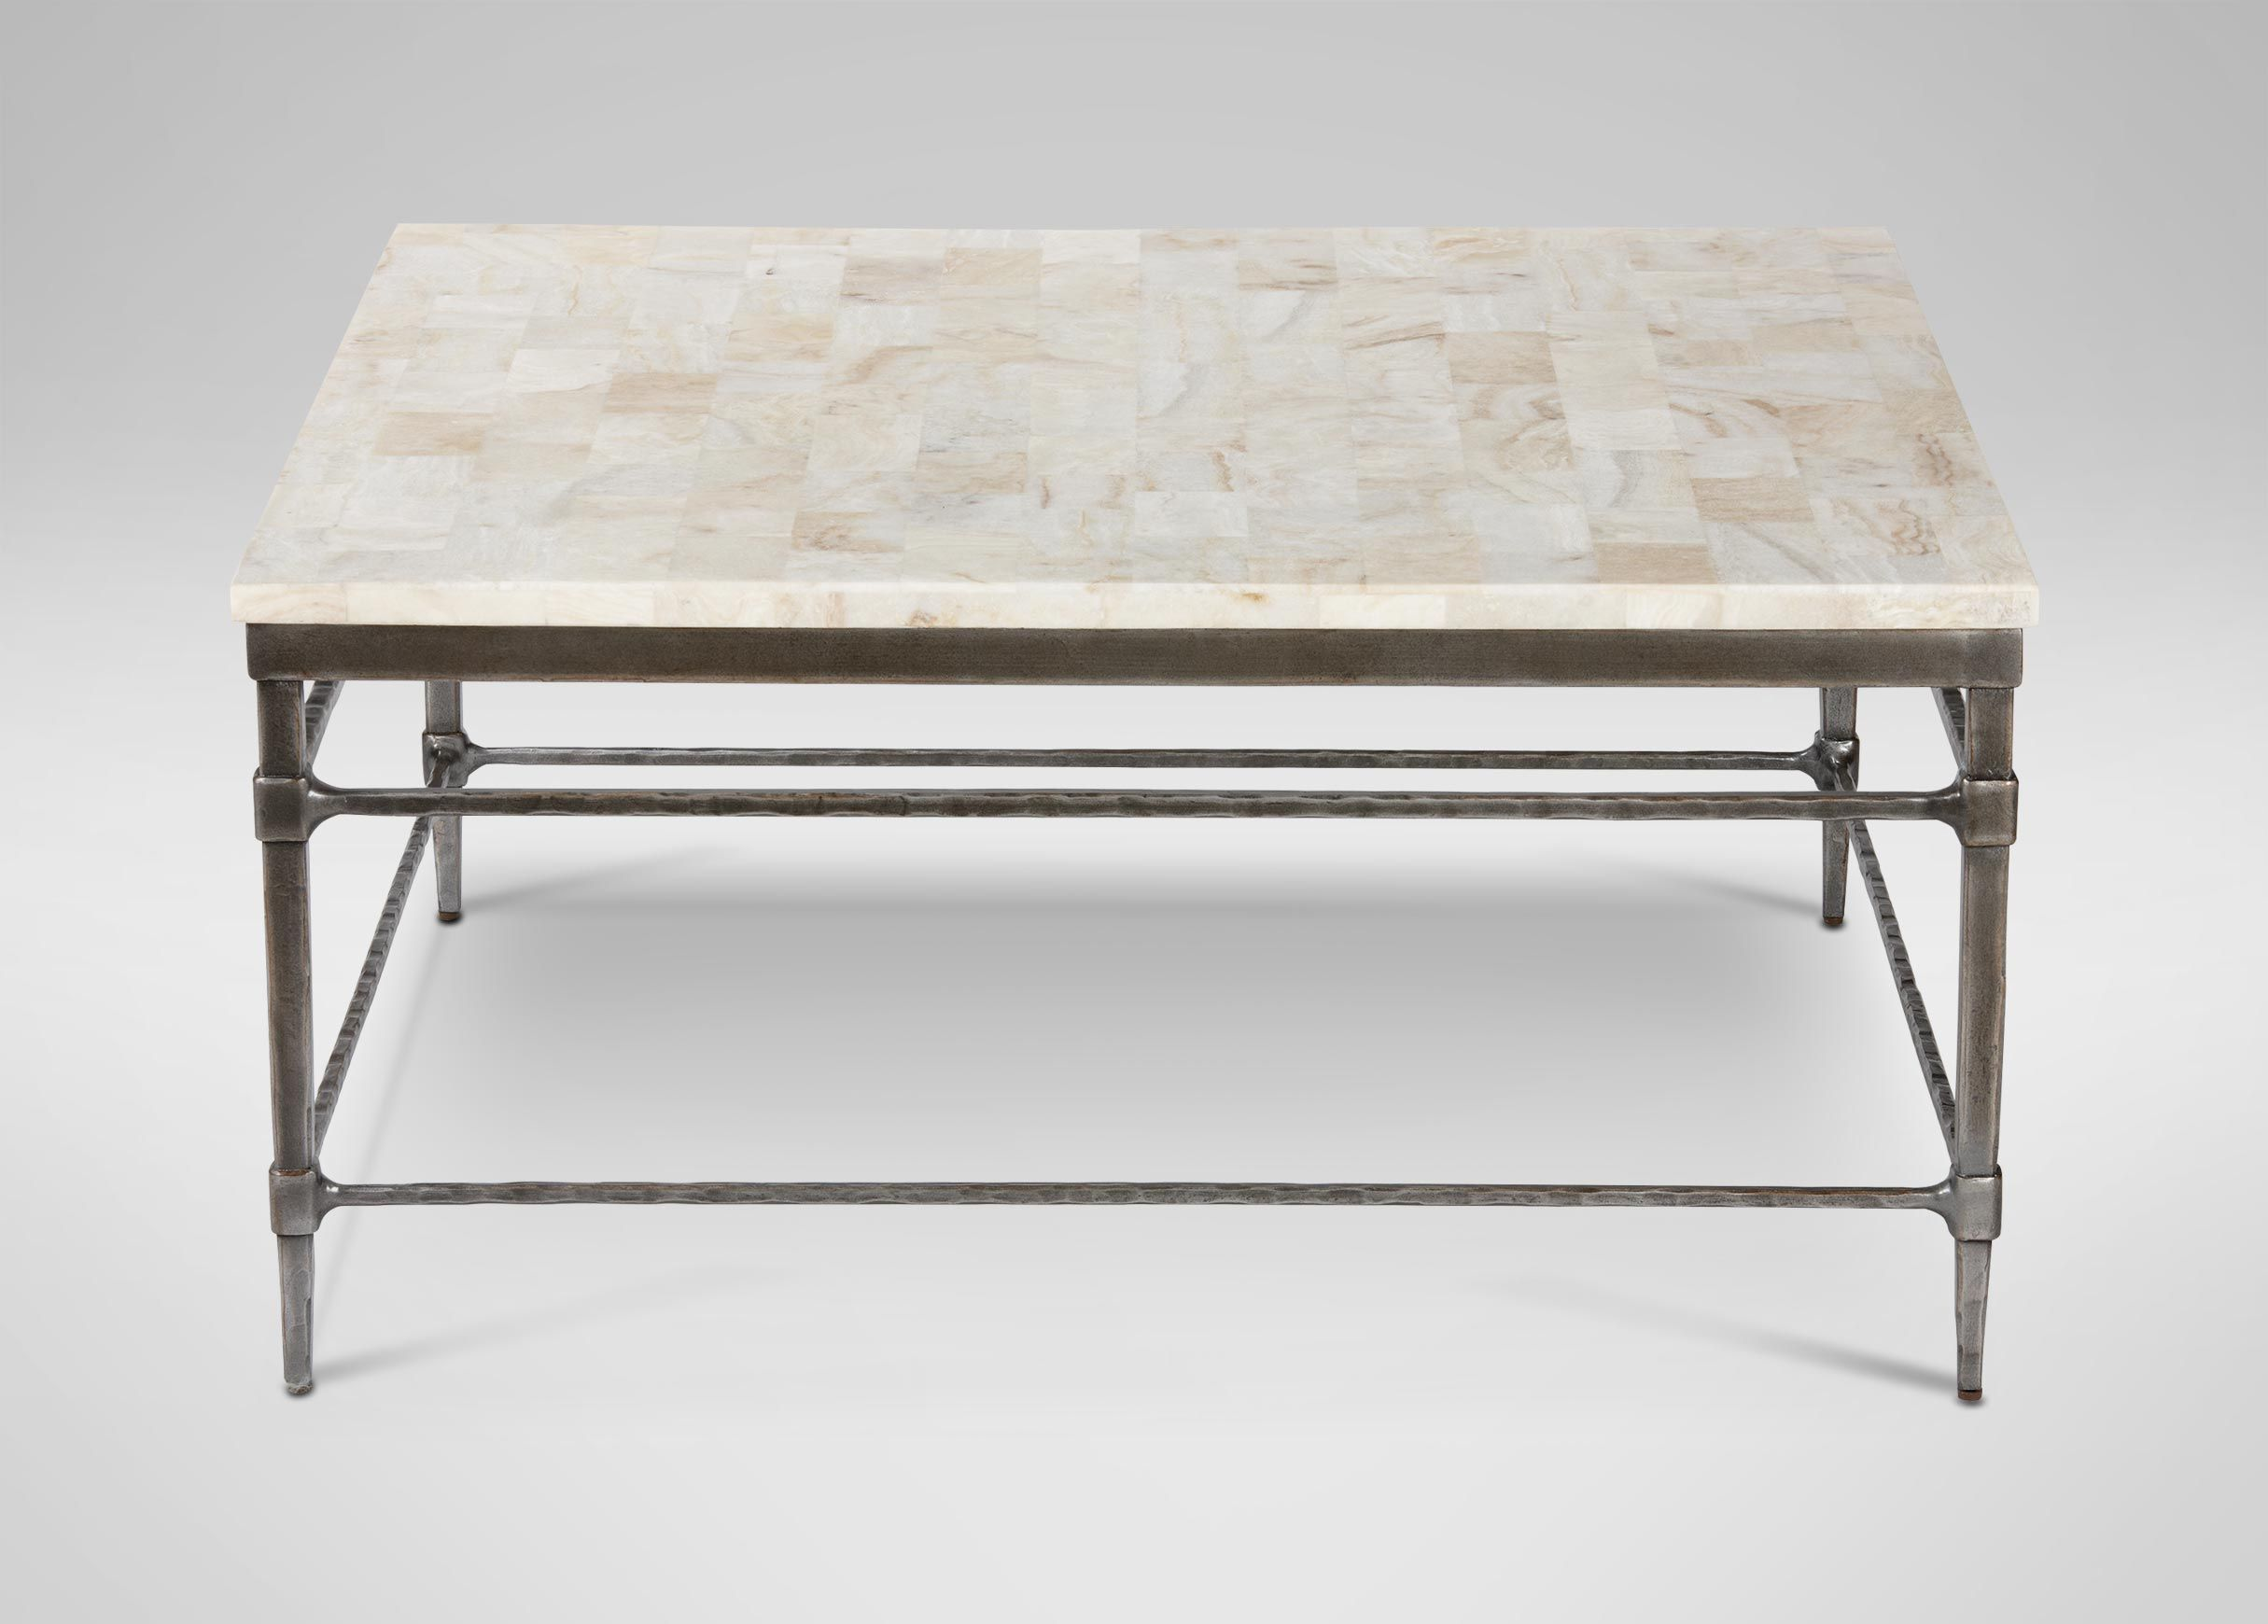 Ethan allen vida square stone top coffee table item138342s 127 ethan allen vida square stone top coffee table item138342s 127 129900 38 geotapseo Image collections